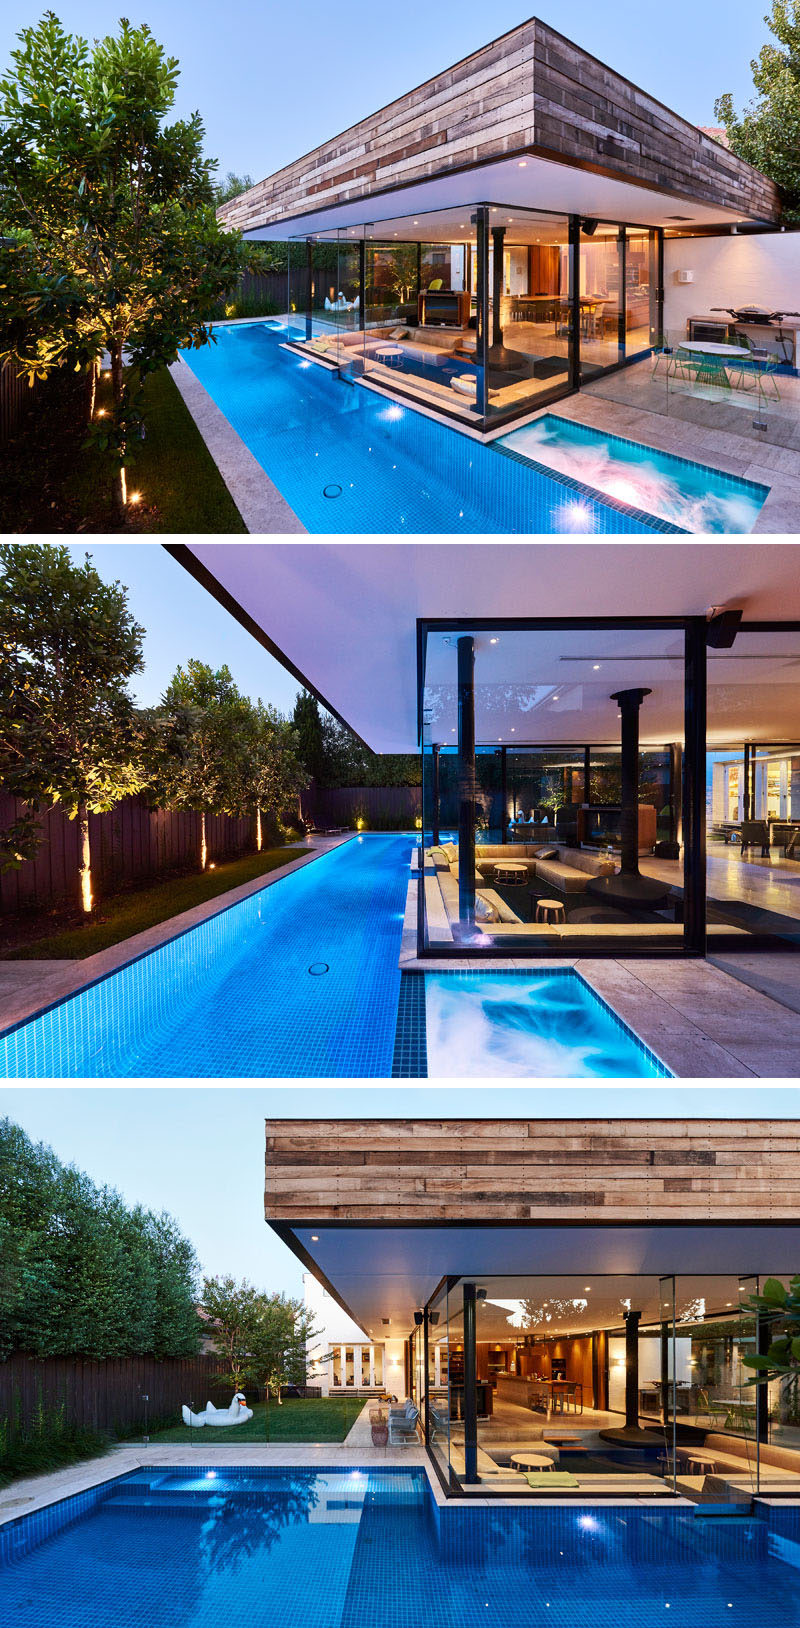 This Australian home features a small lap pool in the backyard and a sunken living room that sits at eye level with the pool.#SunkenLivingRoom #SwimmingPool #Fireplace #LivingRoom #Landscaping